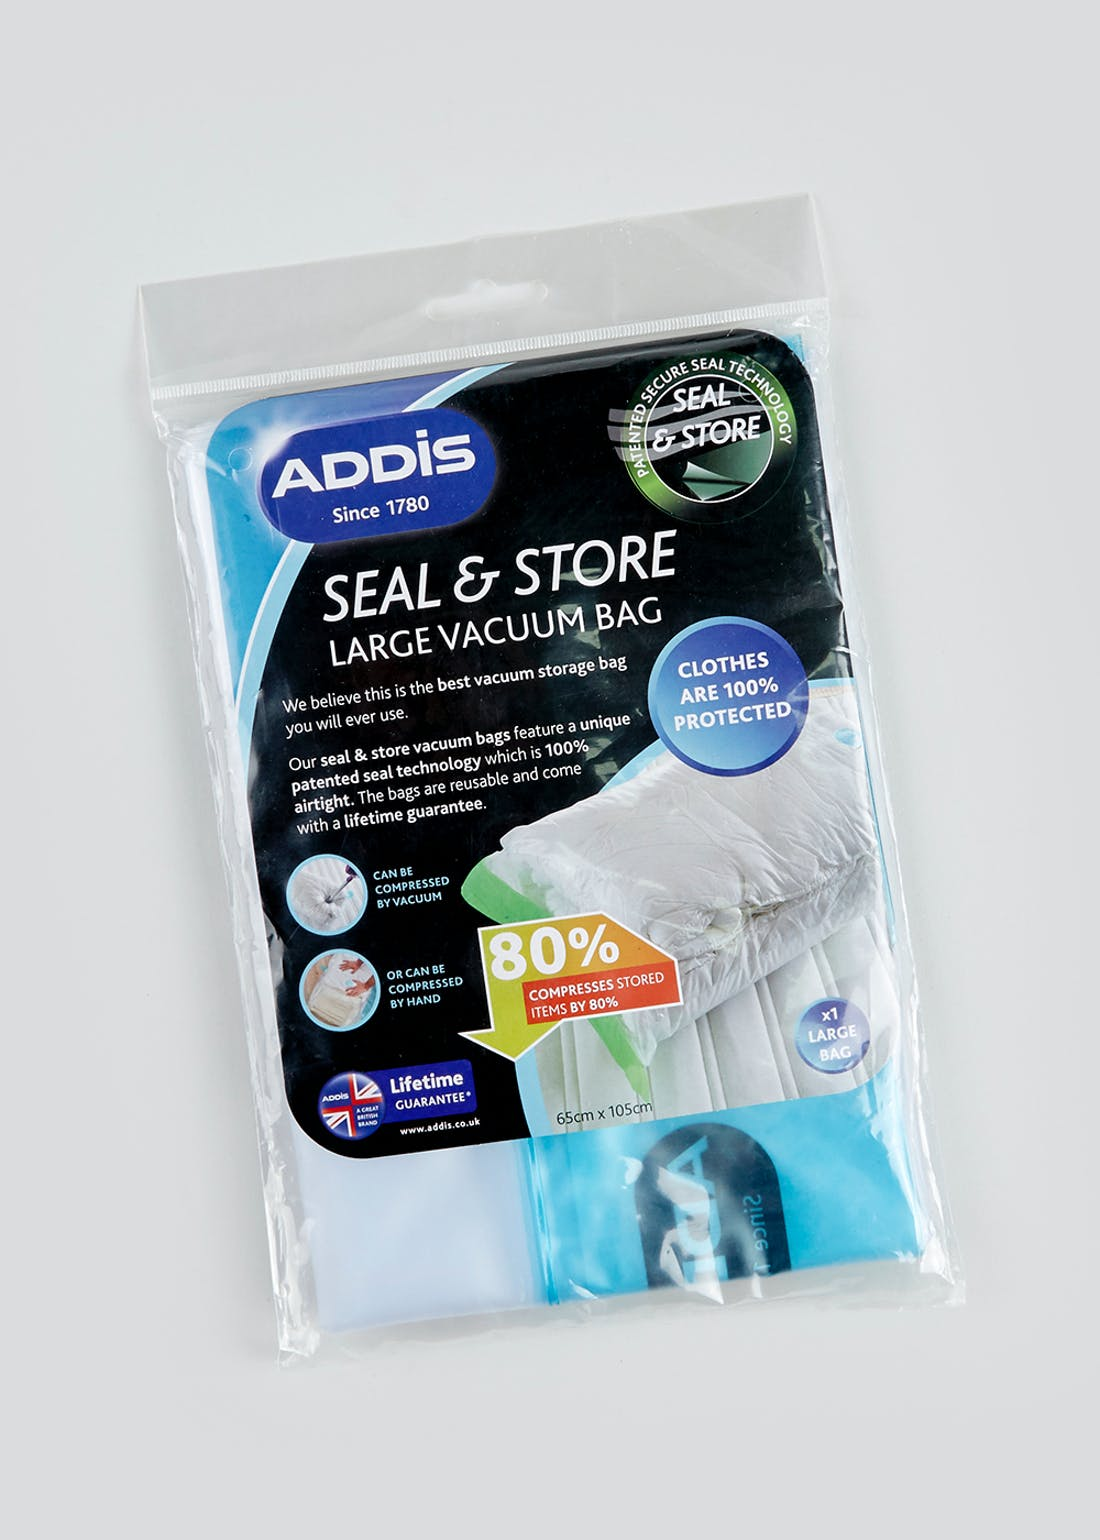 Addis Seal & Store Vacuum Bag (105cm x 65cm)